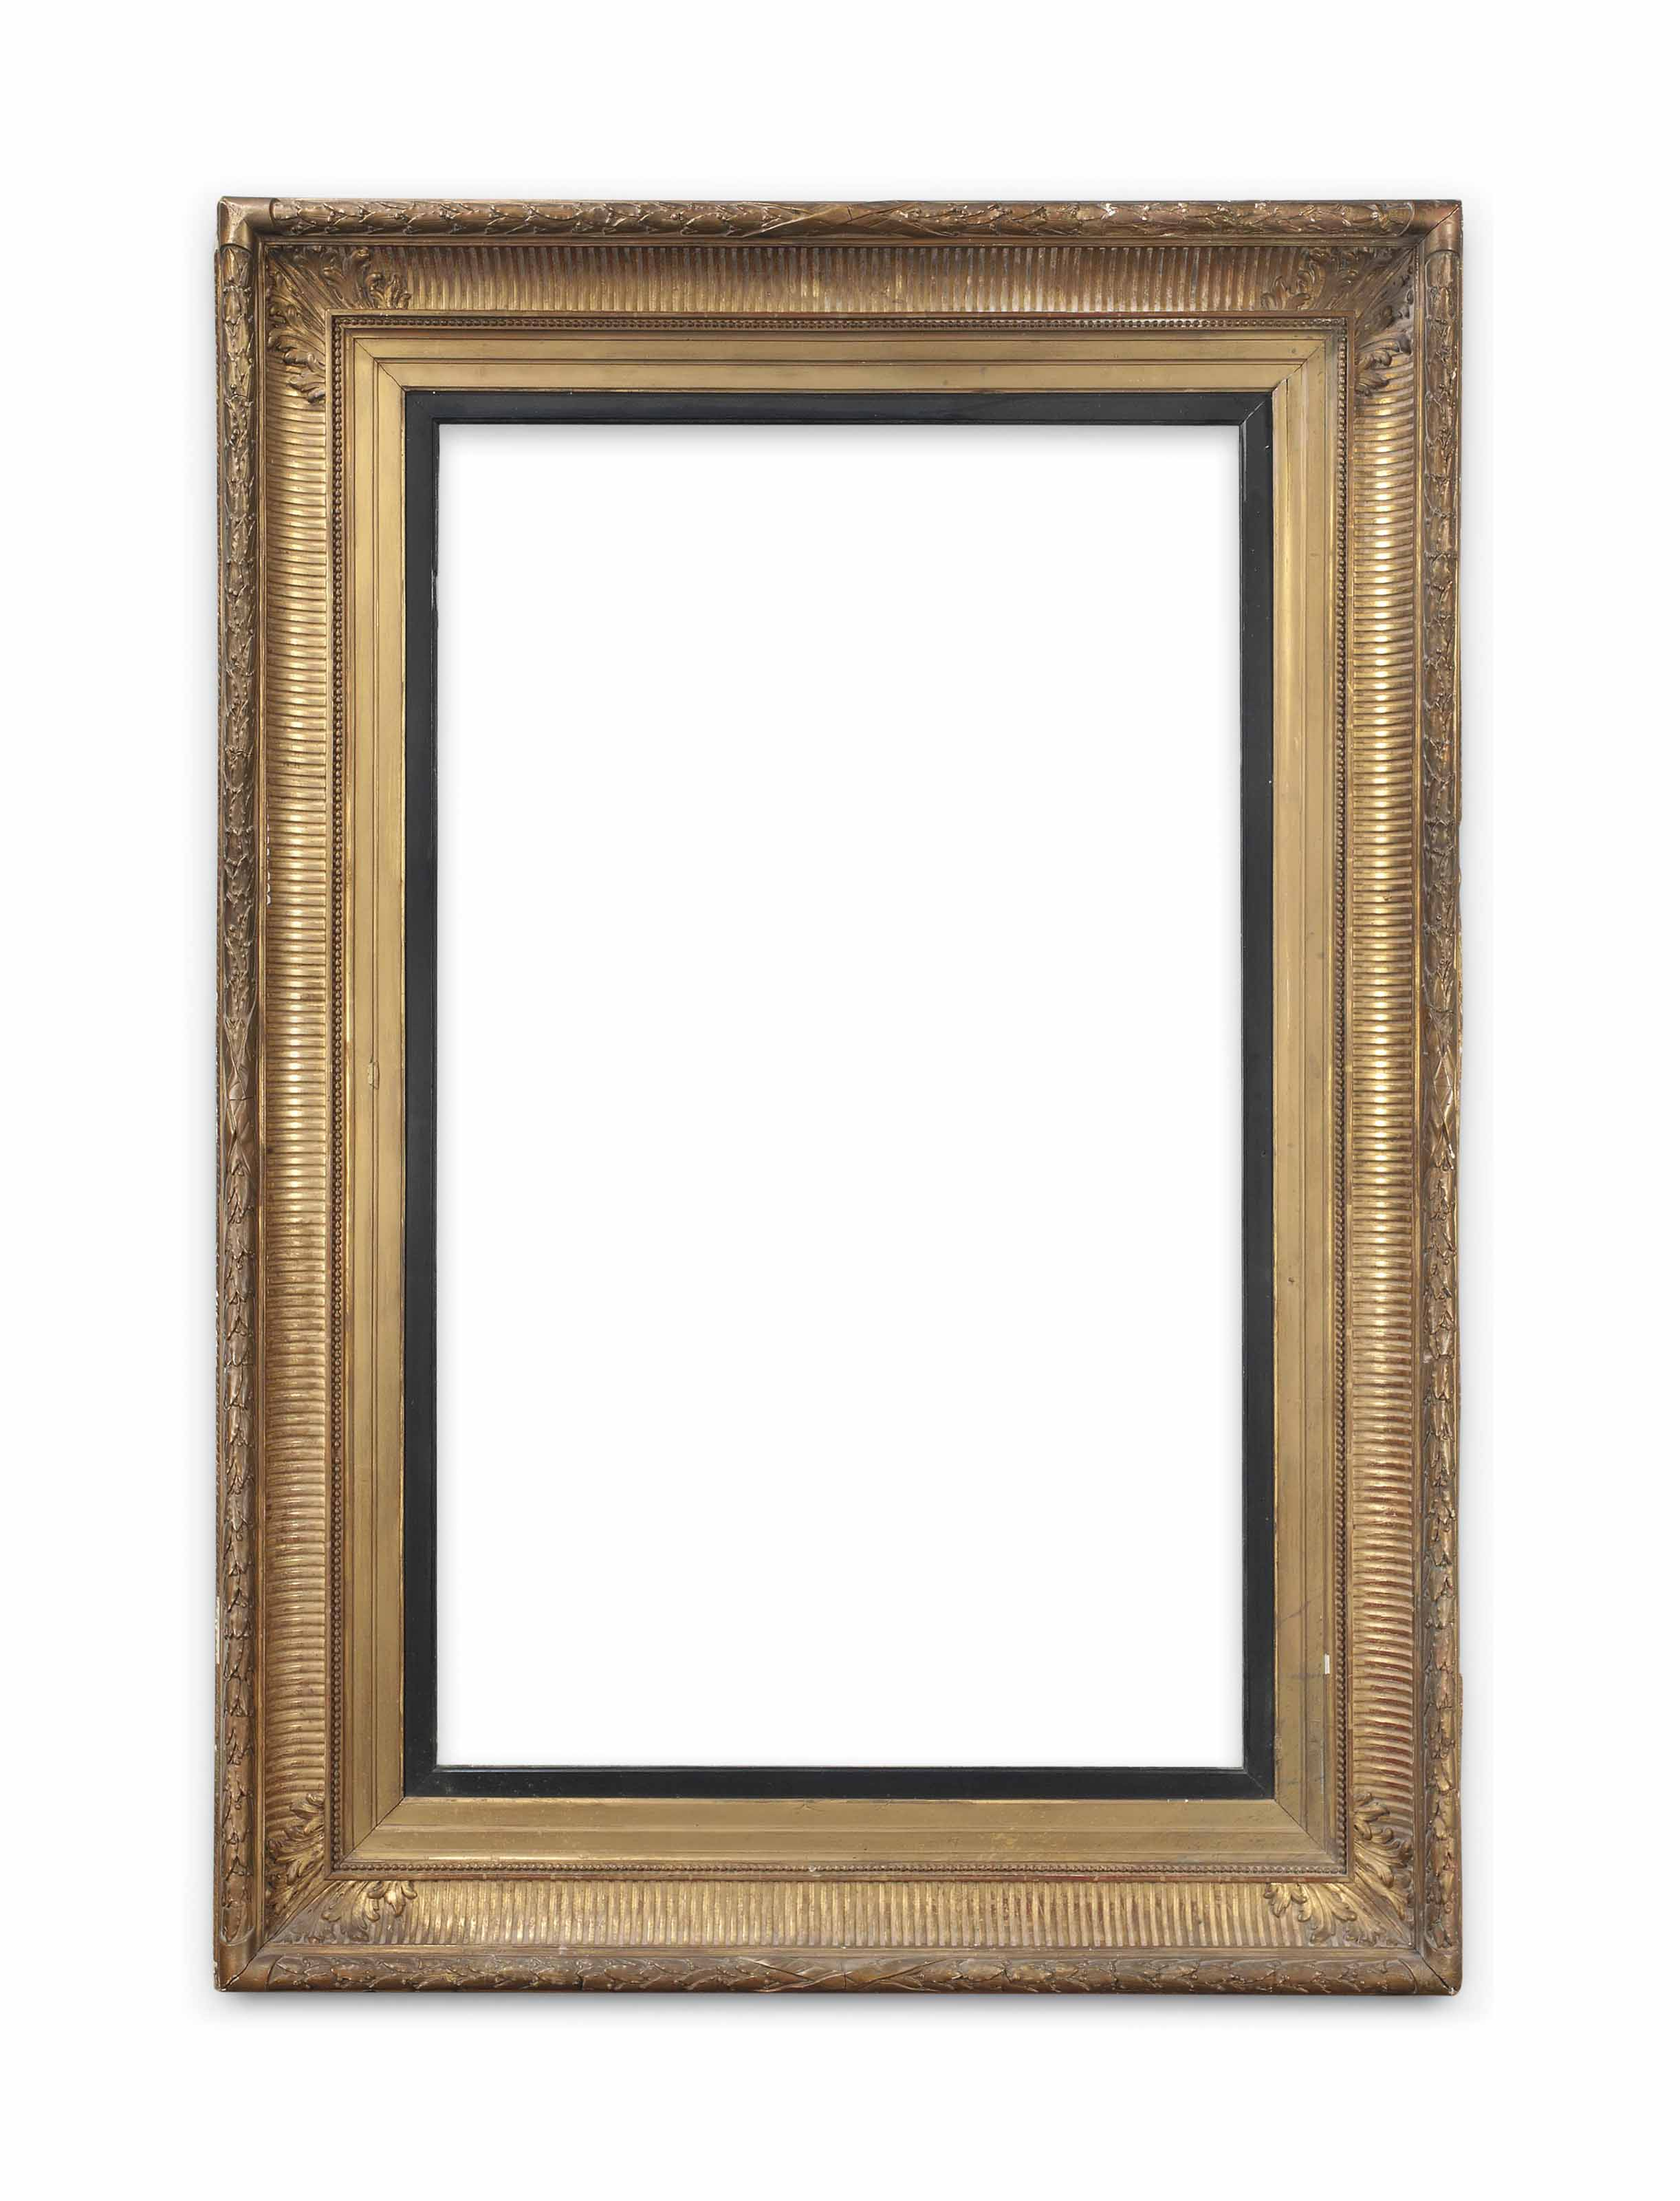 A LARGE WILLIAM IV GILTWOOD AND COMPOSITION PICTURE FRAME